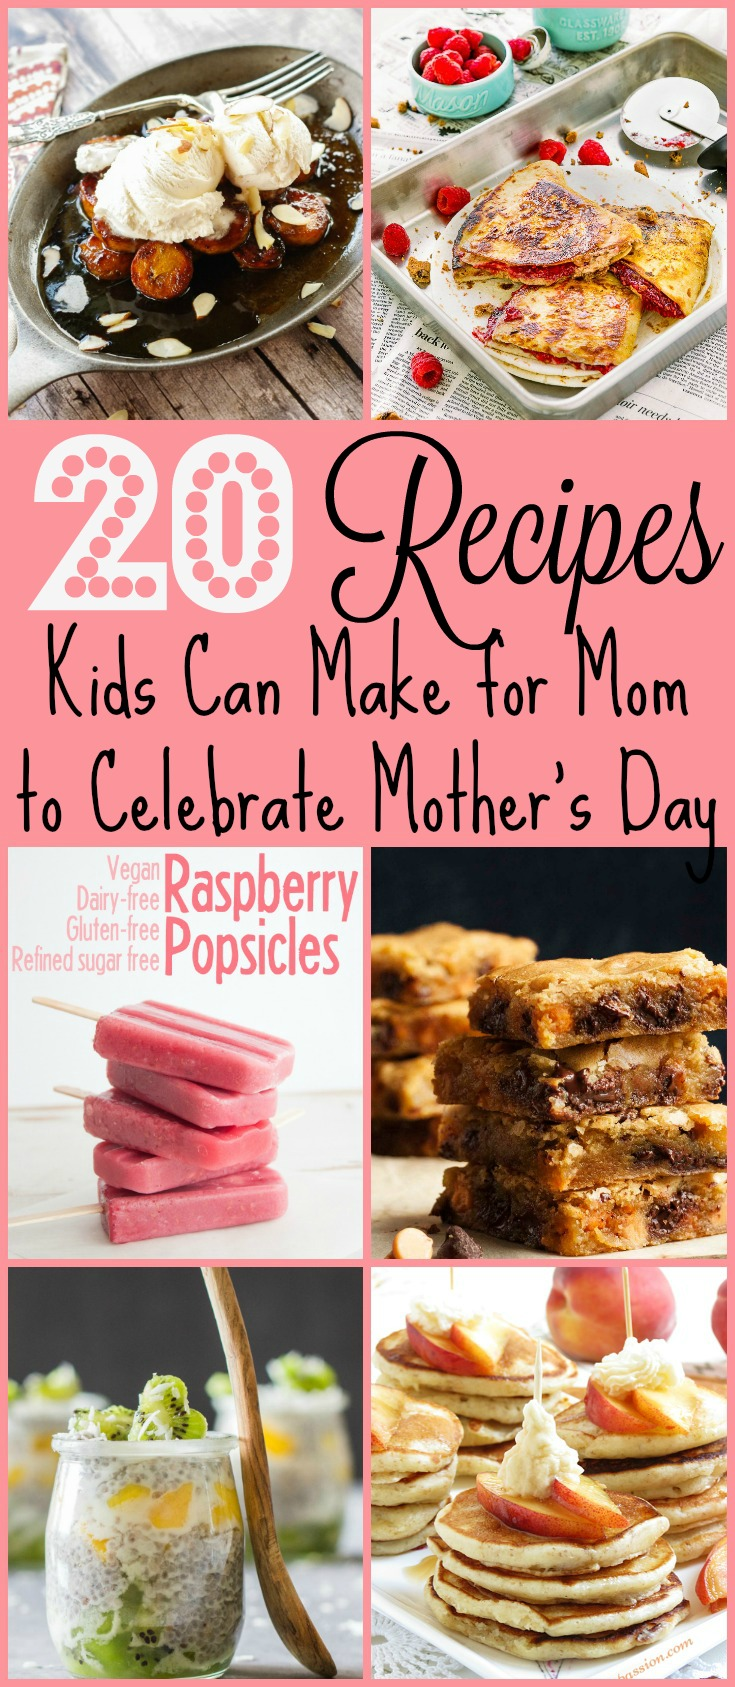 20 Recipes Kids Can Make for Mom to Celebrate Mother's Day | www.homeandplate.com | Get your kiddos involved in celebrating Mother's Day this year by presenting mom with a special recipe the kids can make all on their own.